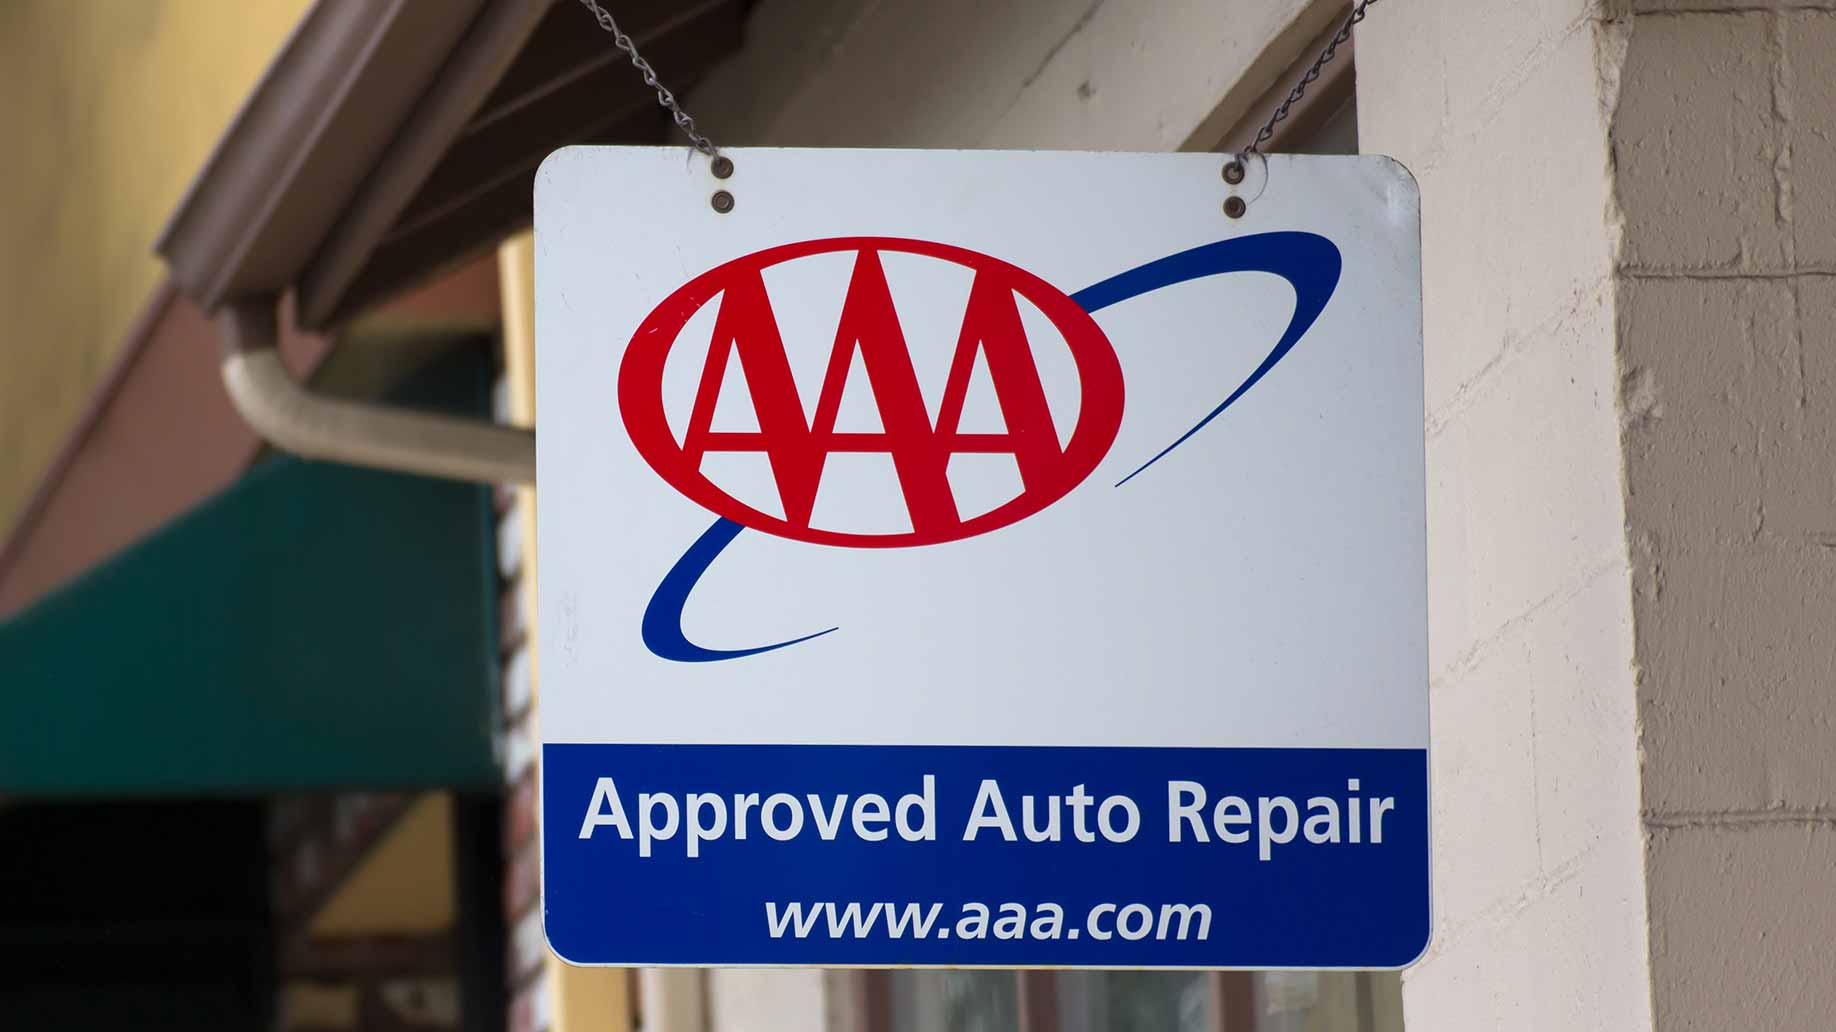 Is a AAA Membership Worth It? - Cost, Benefits & Alternatives